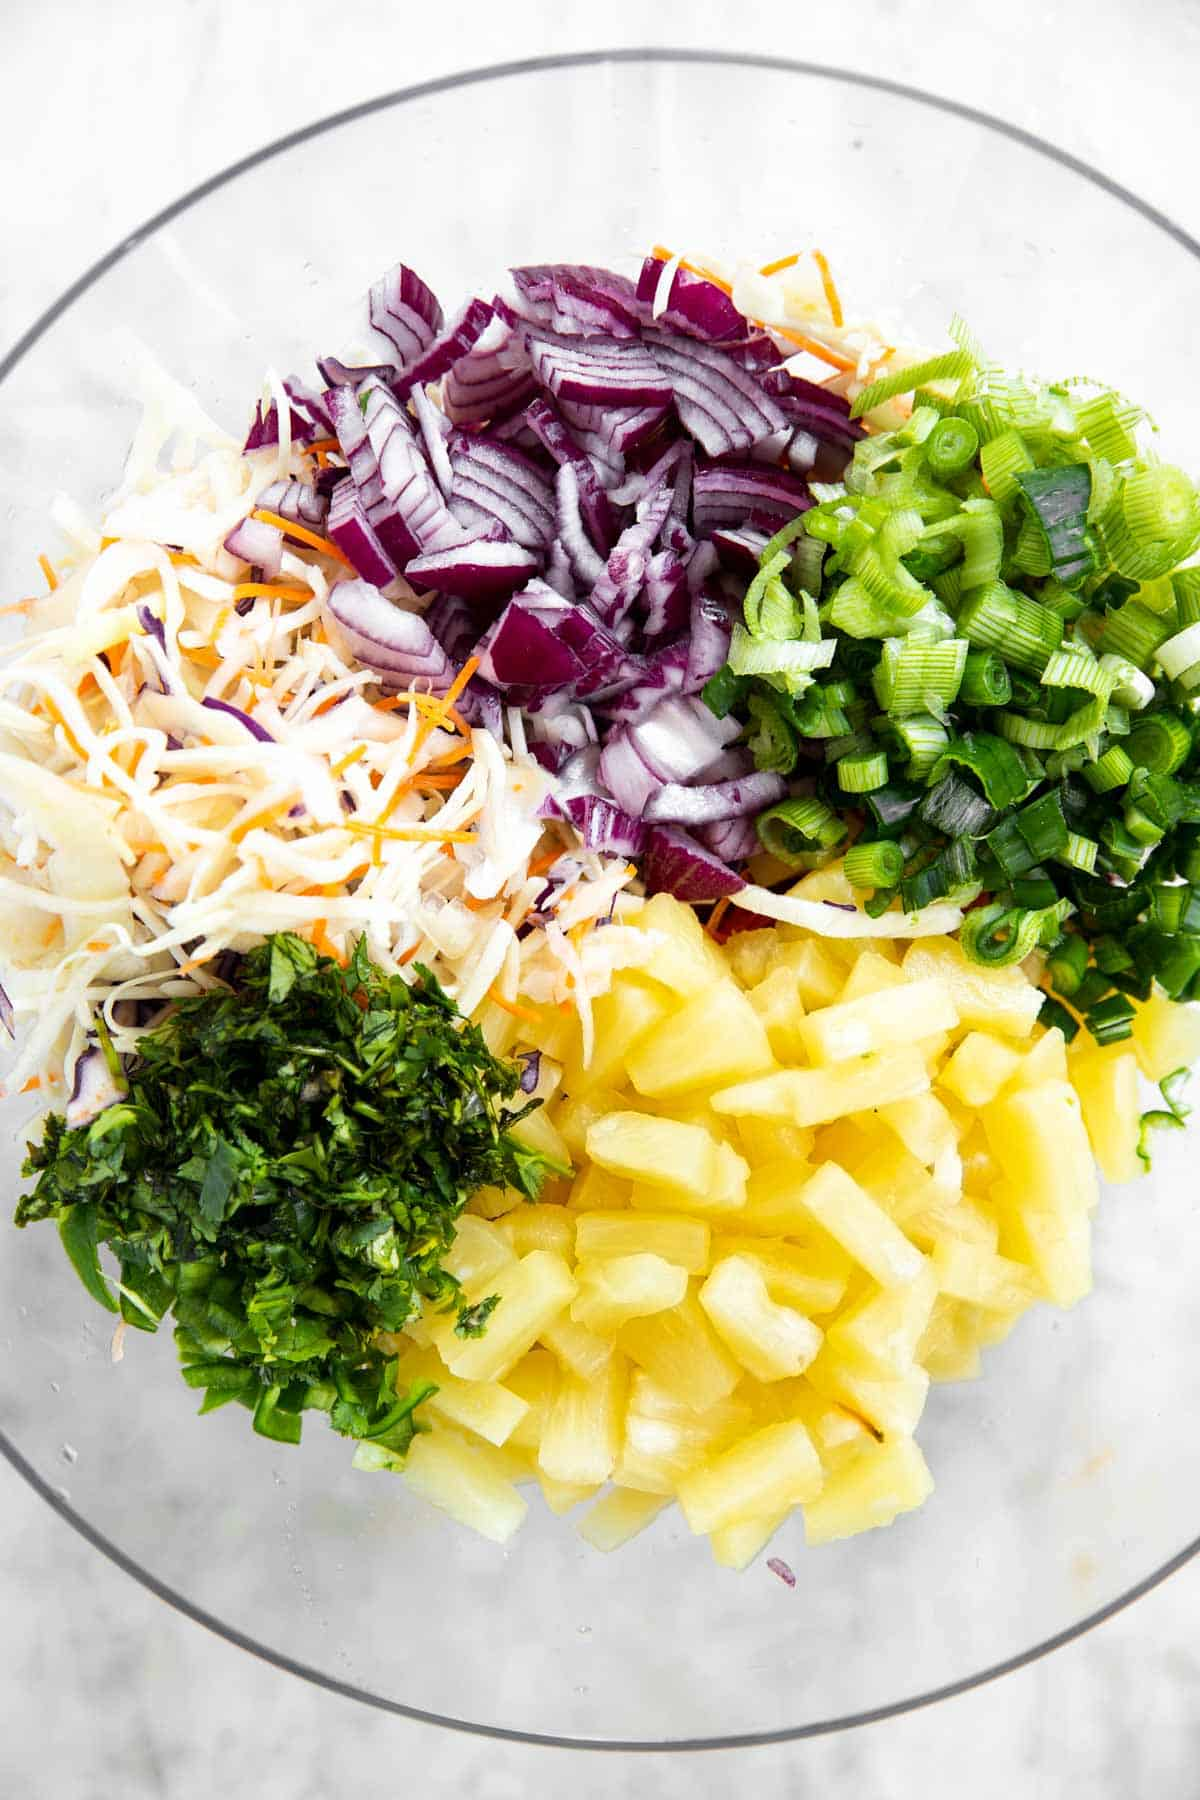 ingredients for pineapple coleslaw in glass bowl